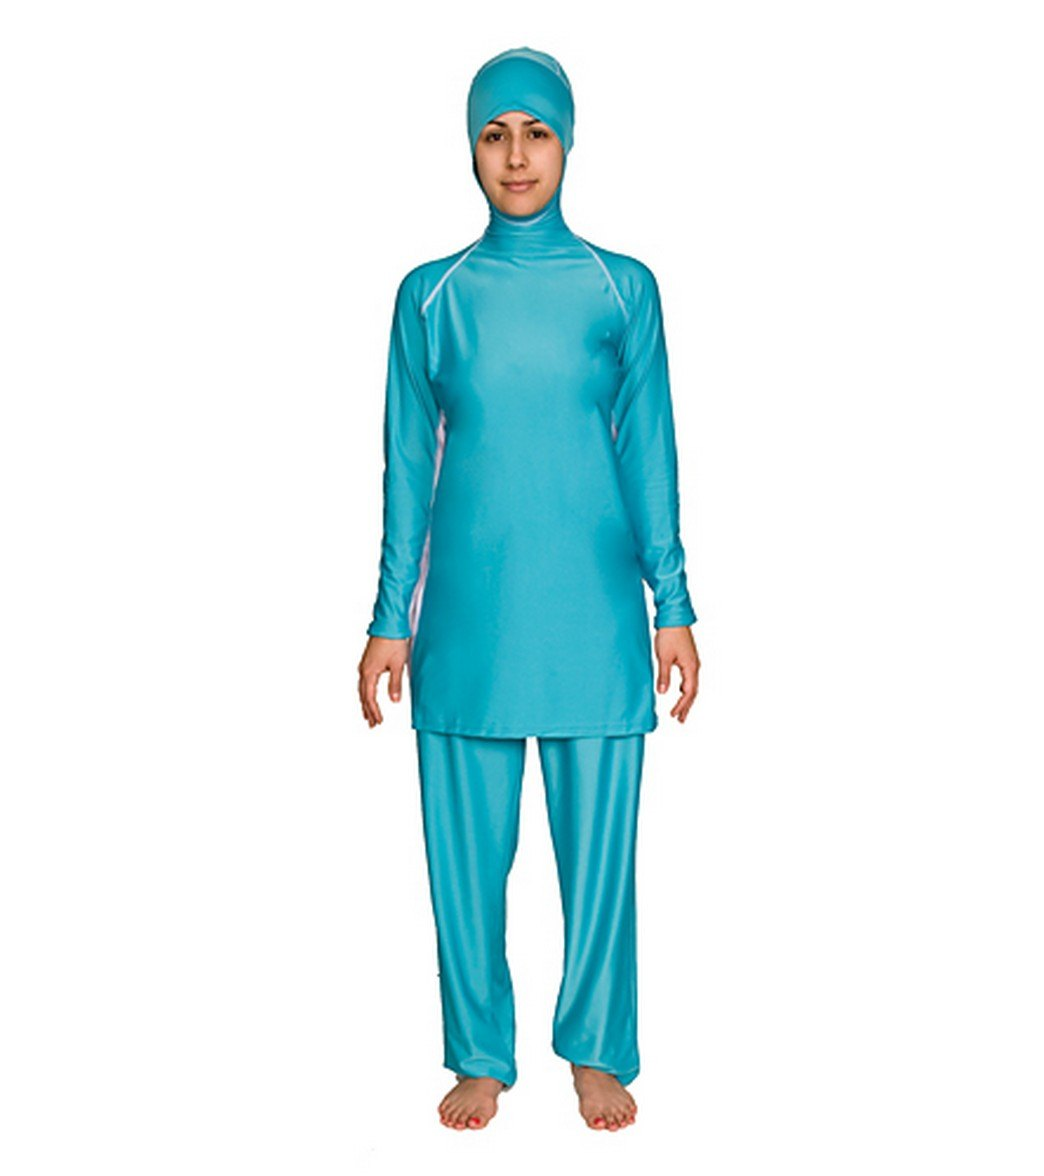 f48de2254cd Alsharifa Surf-Style Modest Swimsuit at SwimOutlet.com - Free Shipping